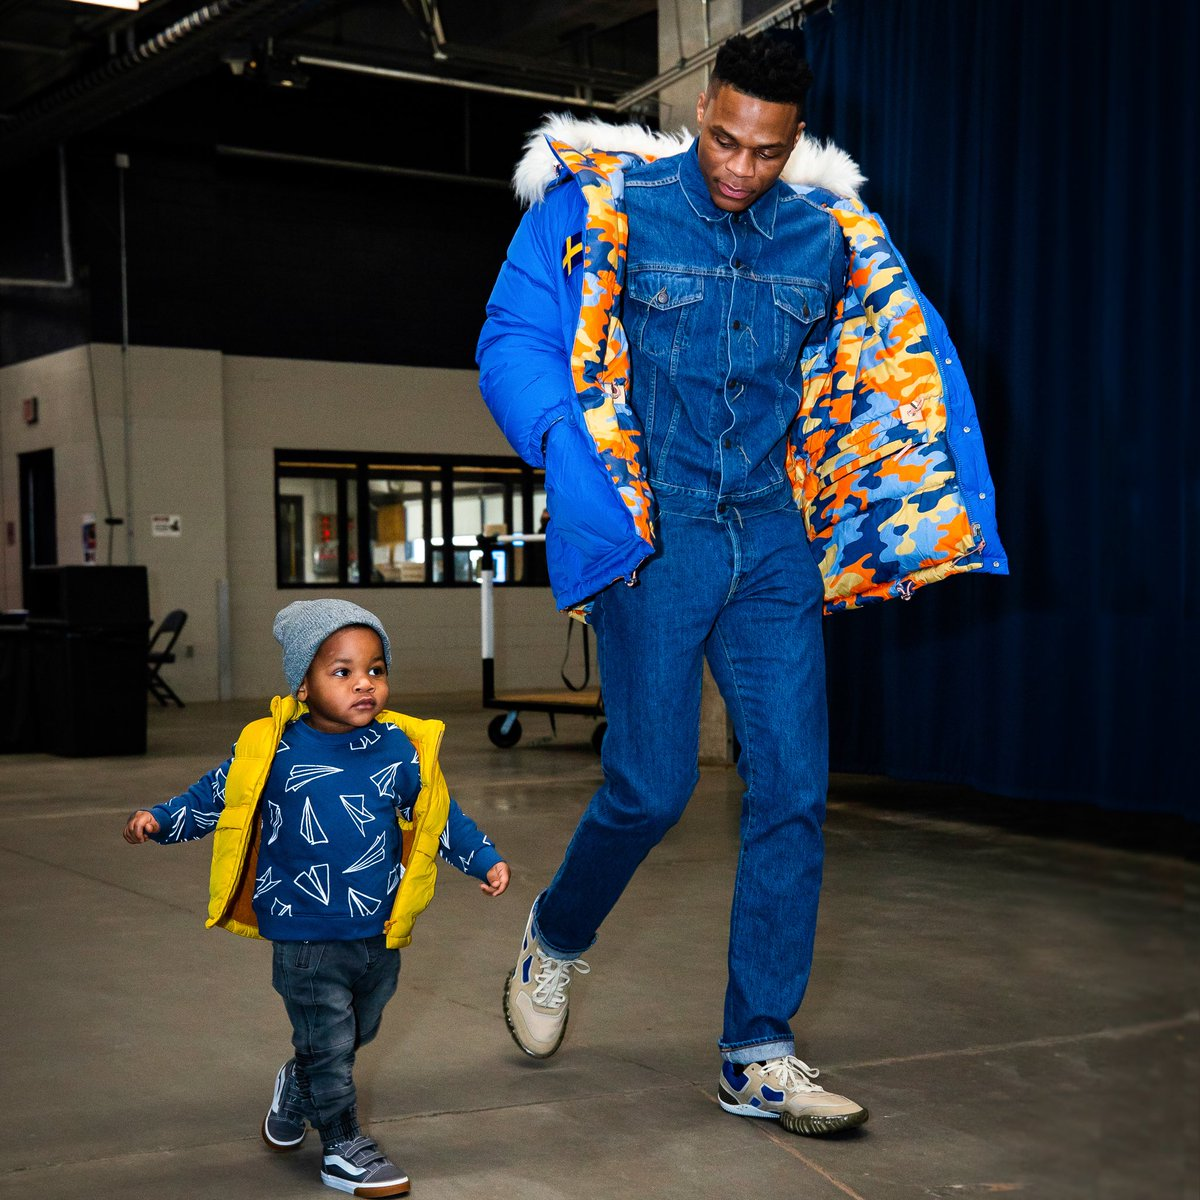 """""""I have a great deal of respect for Russell and there is no way to adequately describe our appreciation for what he has meant to Oklahomans. His legacy here is immense, and he will be honored by the team for all he has done. """"  -Thunder Chairman Clay Bennett"""